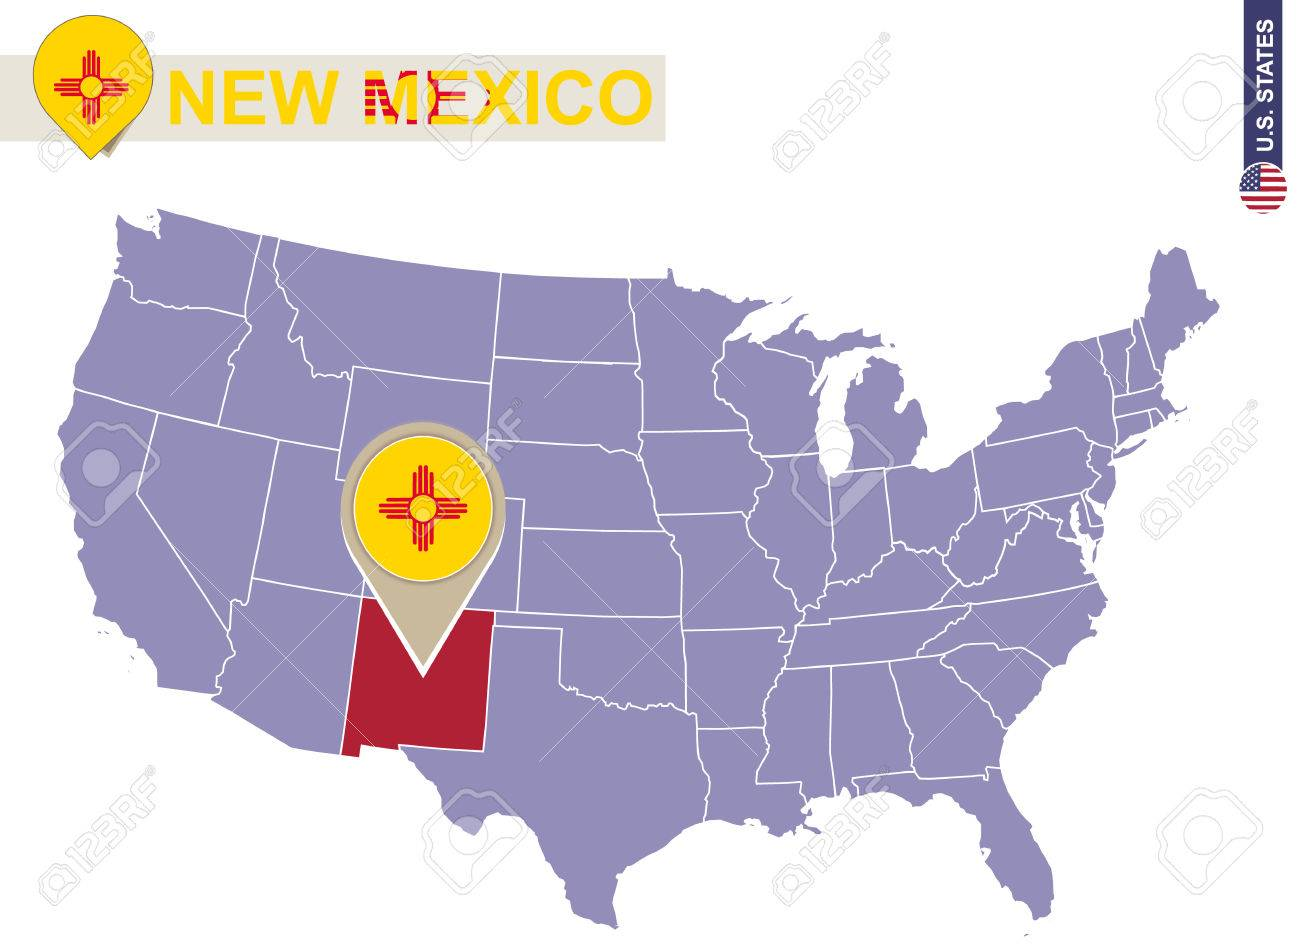 New Mexico State on USA Map. New Mexico flag and map. US States.